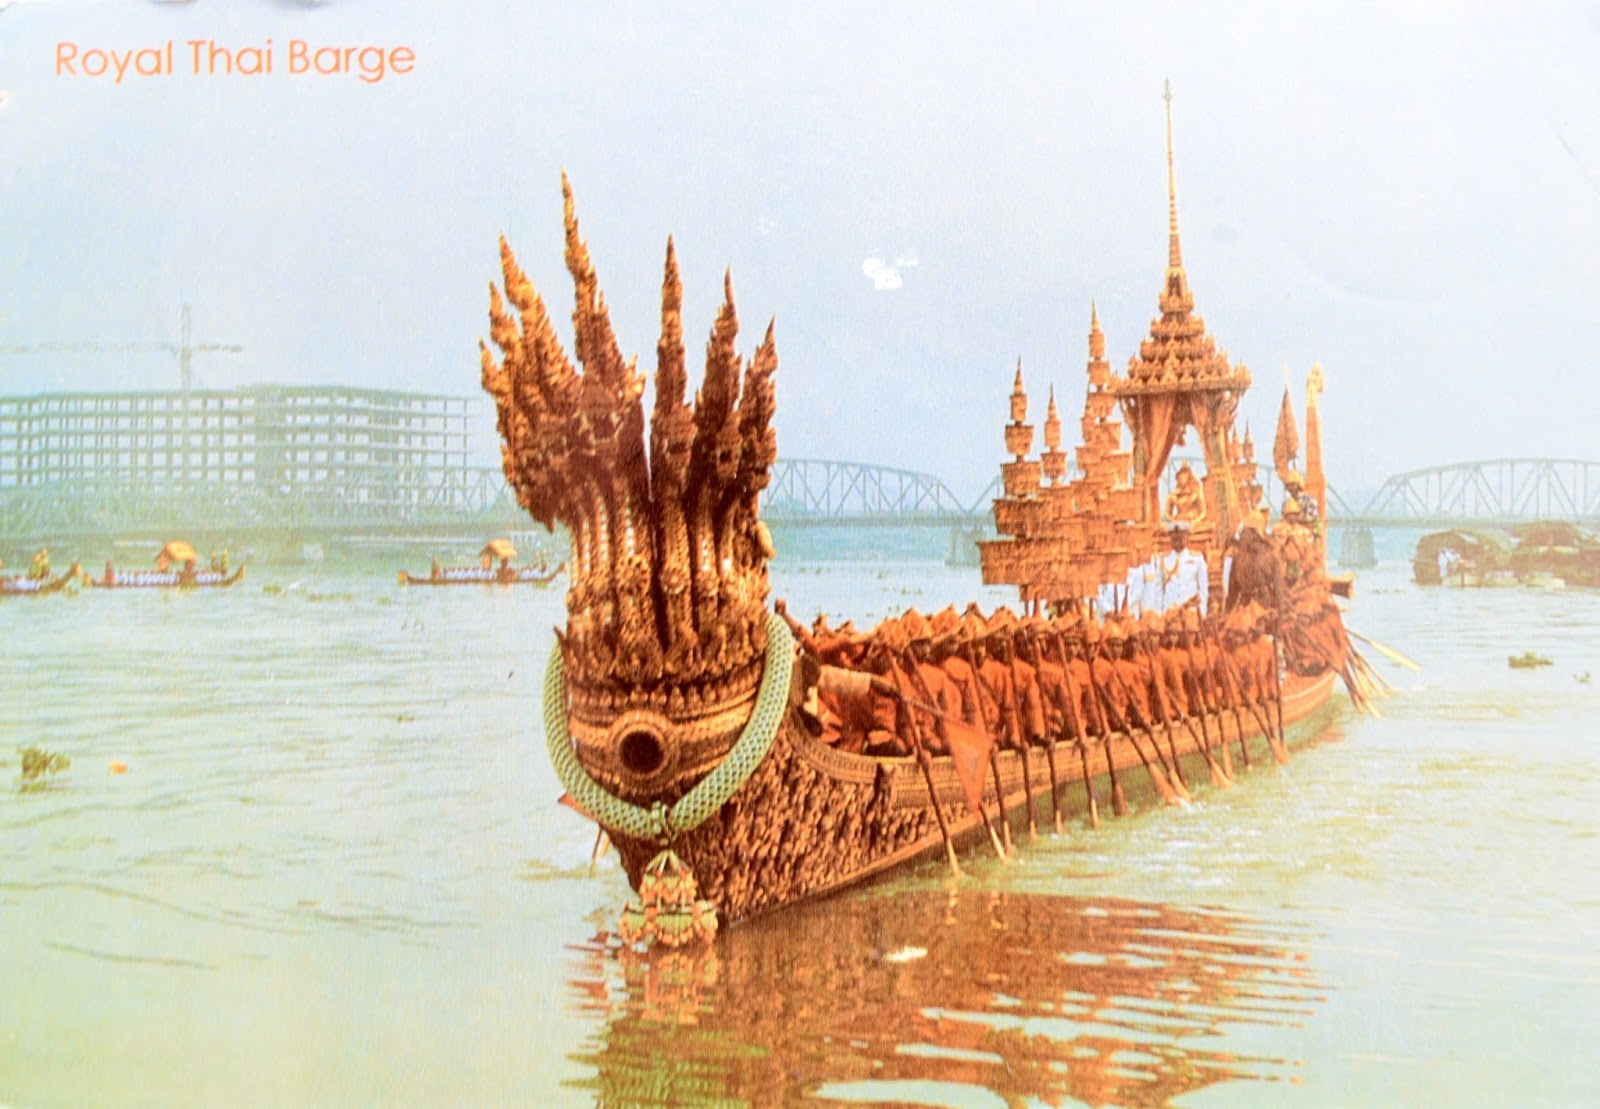 The Nakaraj Barge in a Procession - Bangkok, Thailand